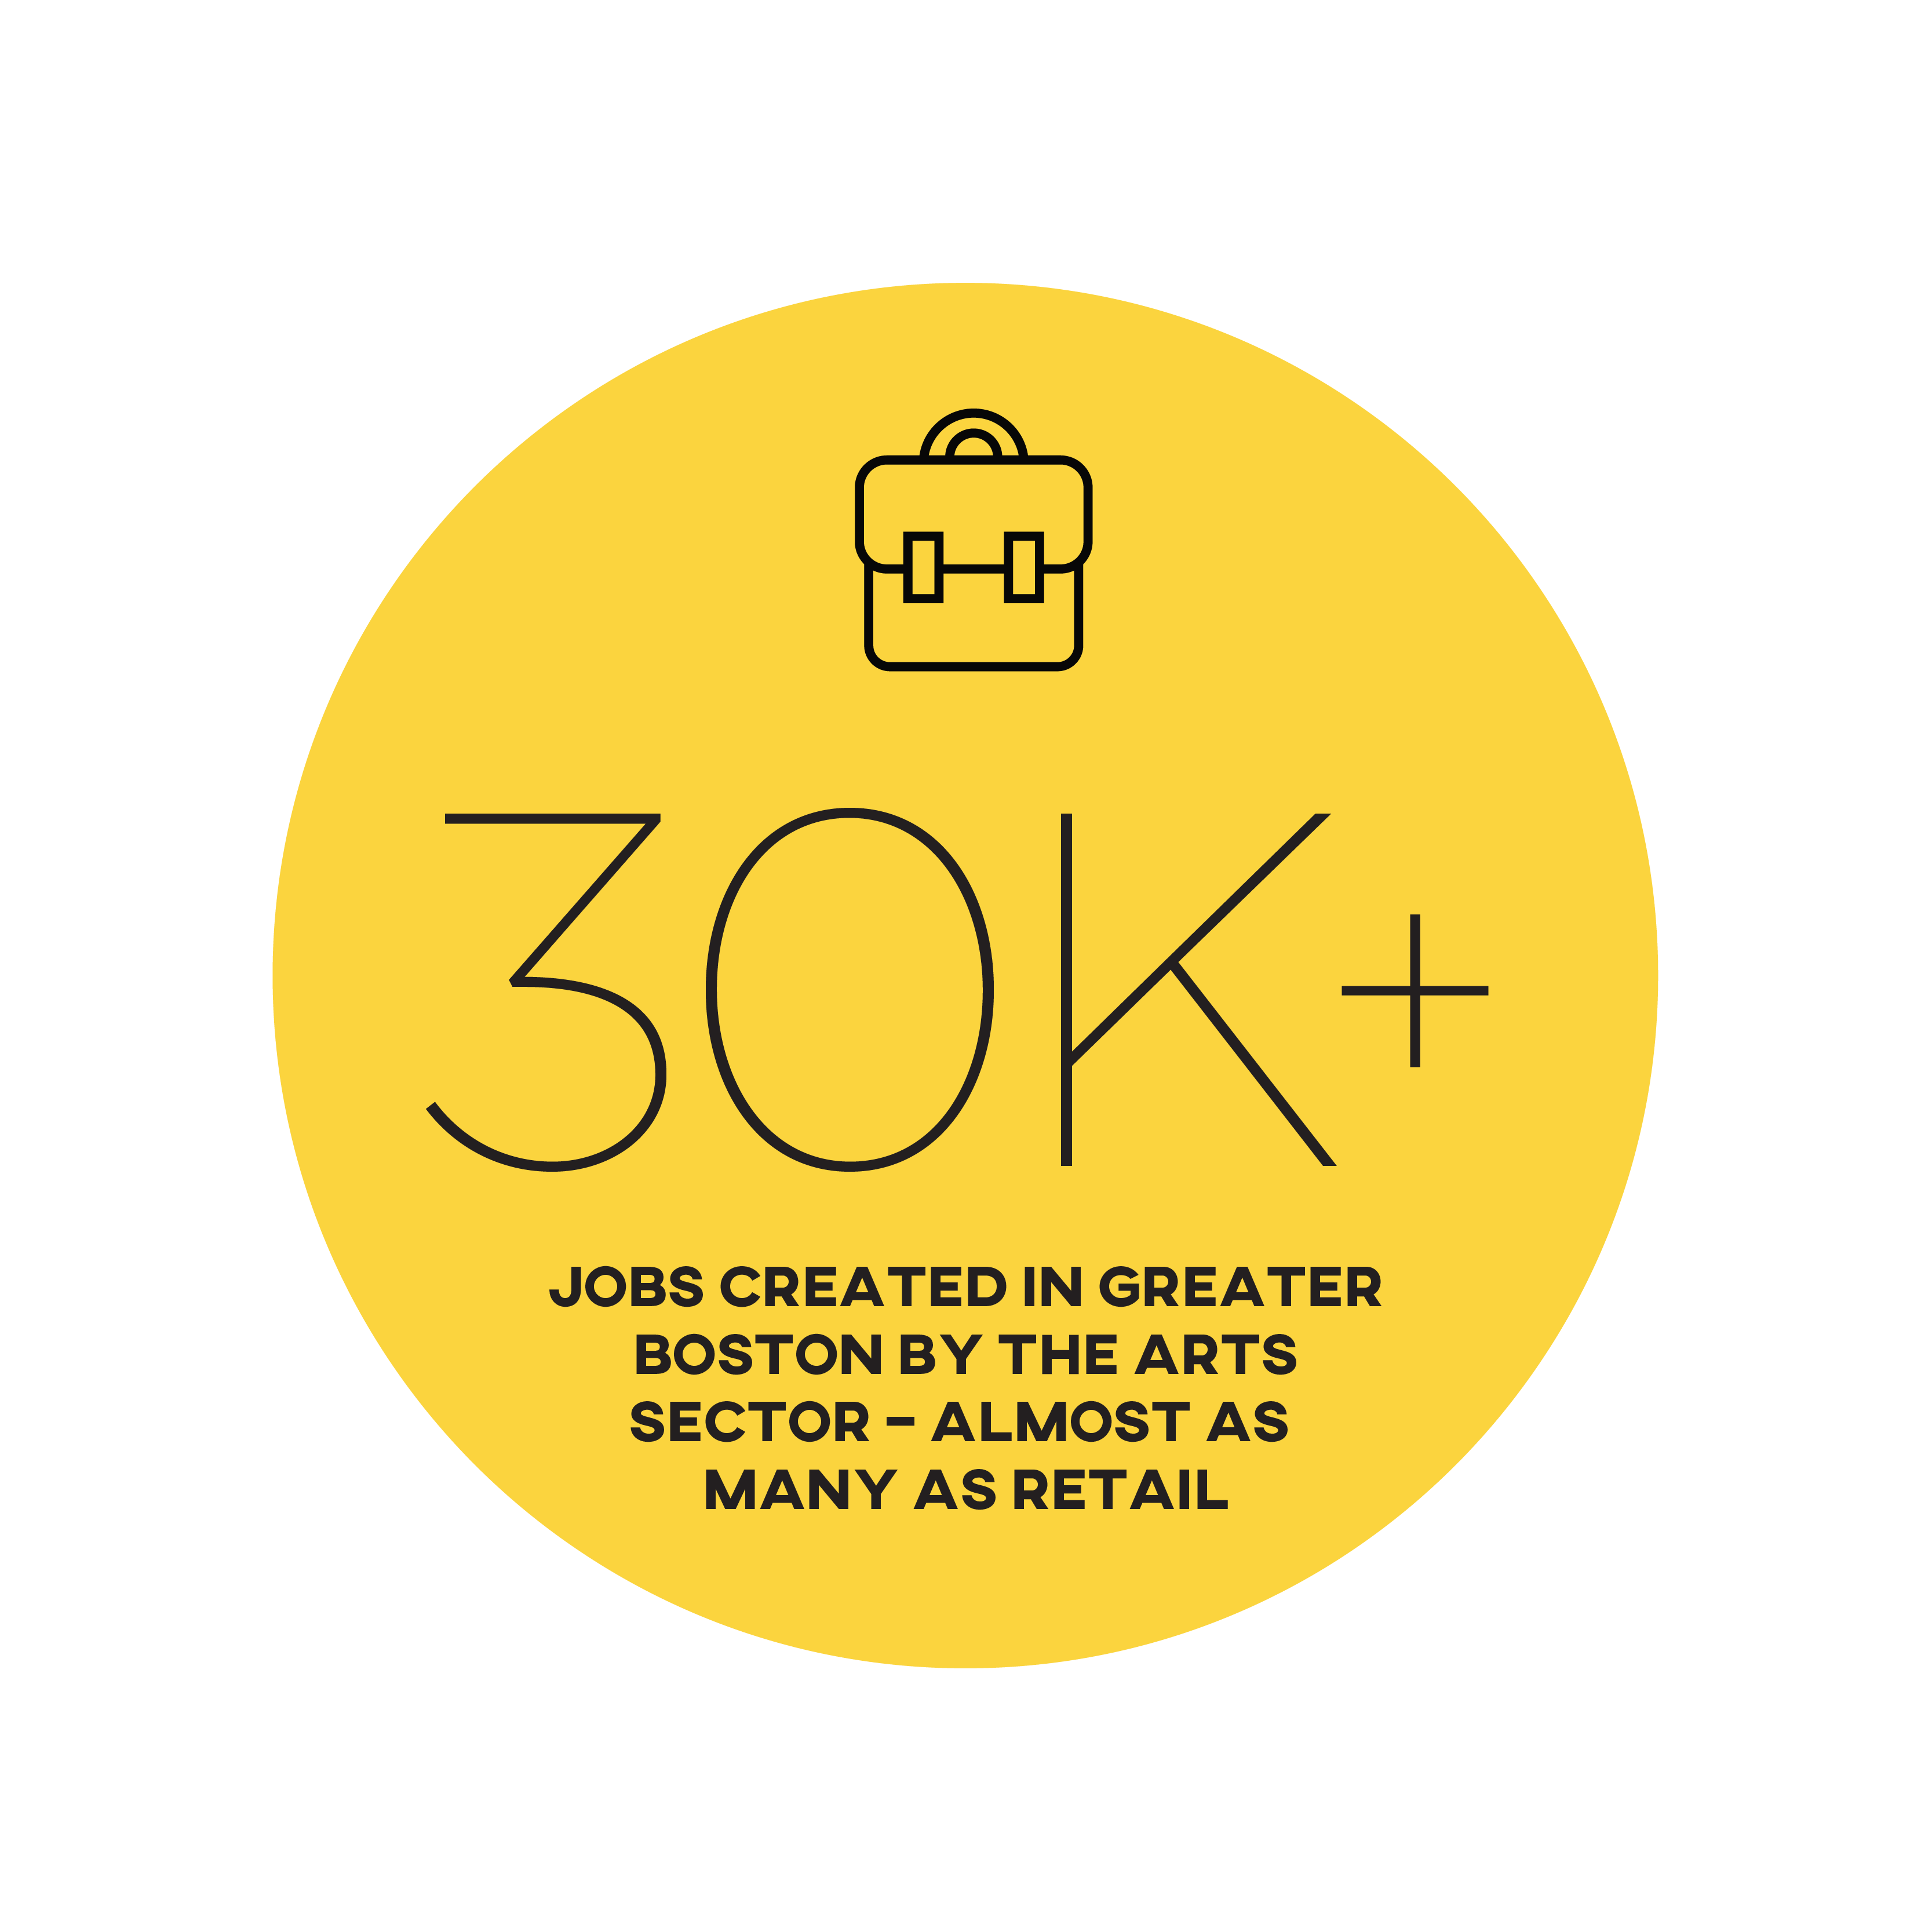 30k + - Jobs created in Greater Boston by the arts sector - almost as many as retail